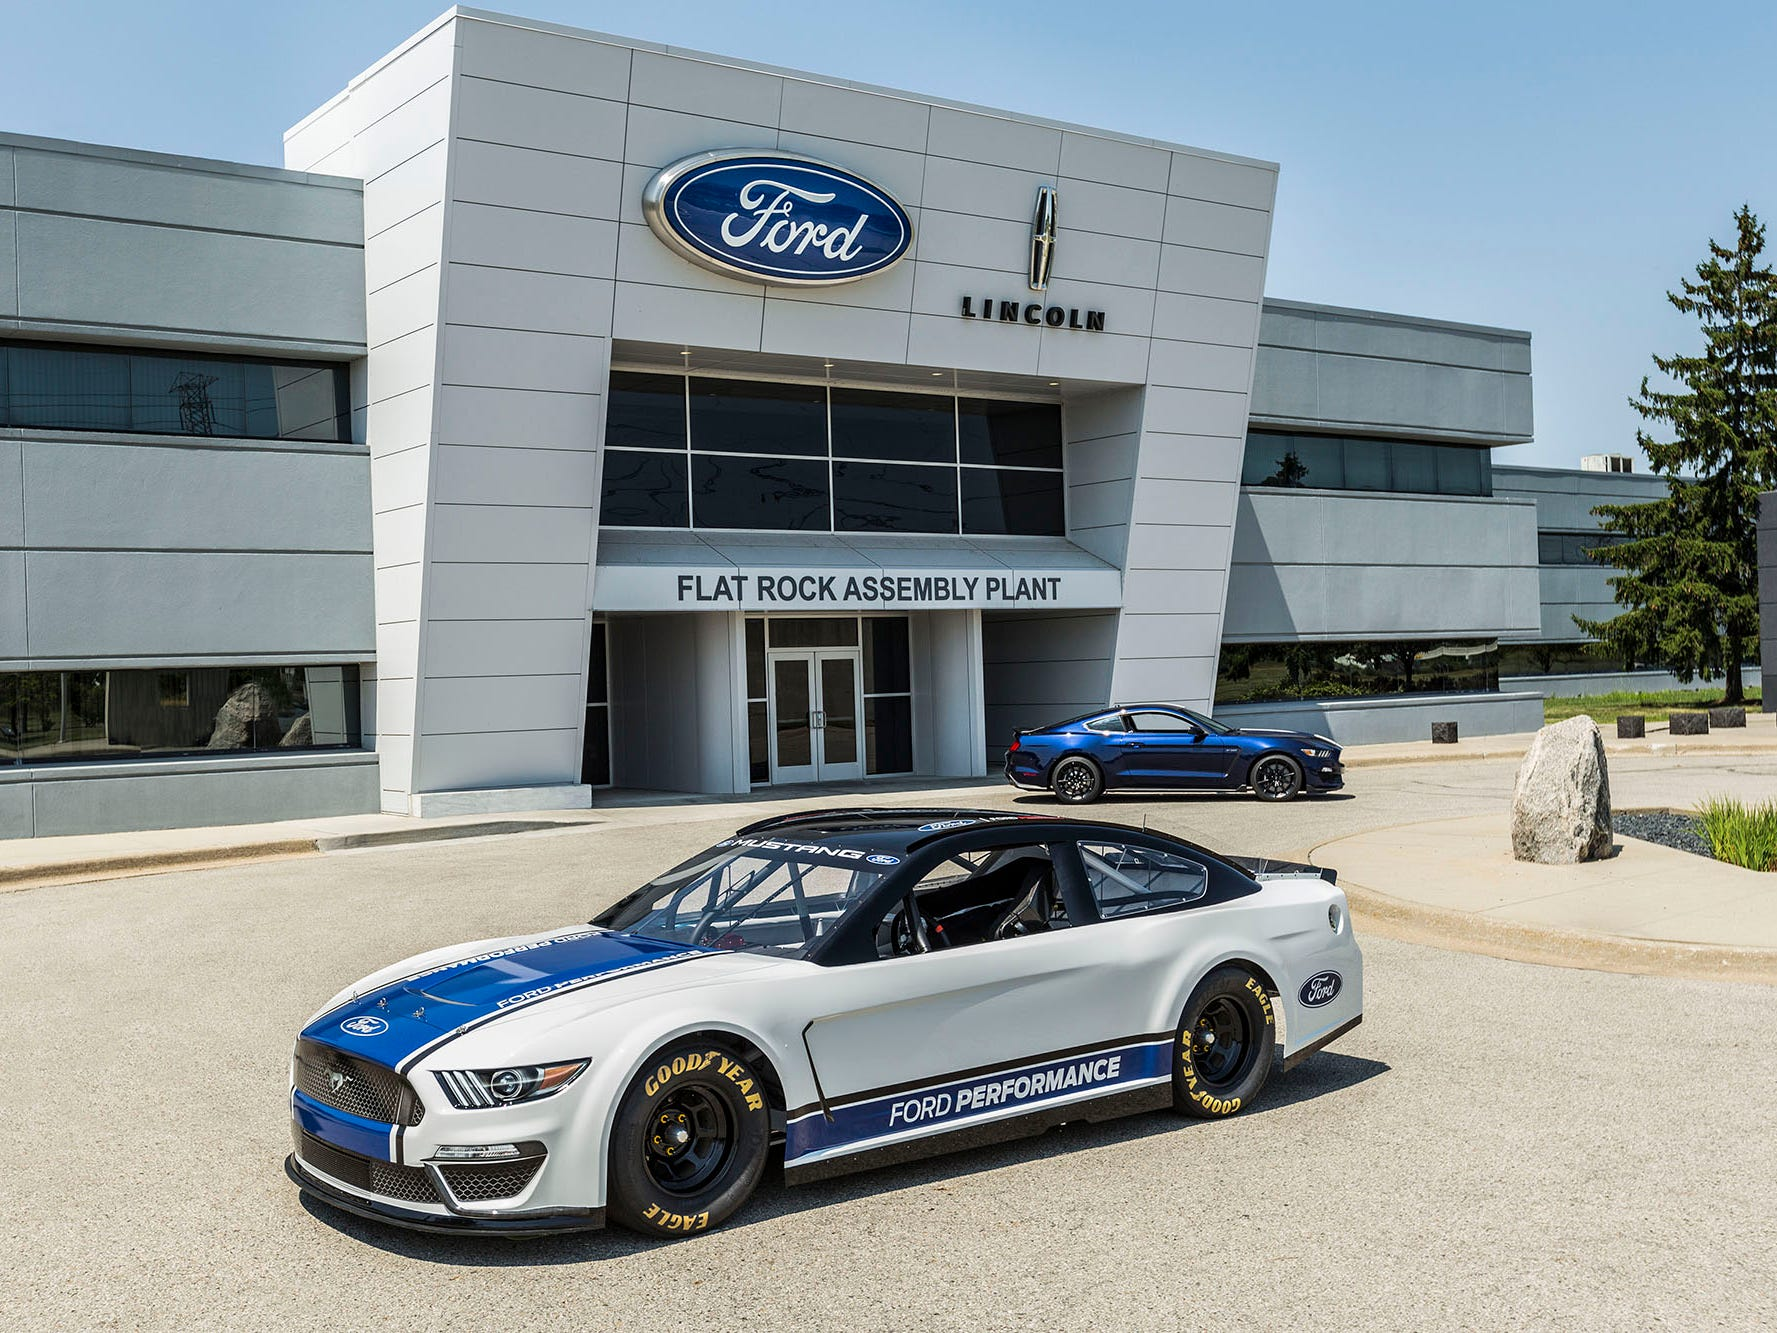 Today's reveal comes on the heels of a celebration of the 10 millionth Mustang off the assembly line in Flat Rock, Mich., on Wednesday.